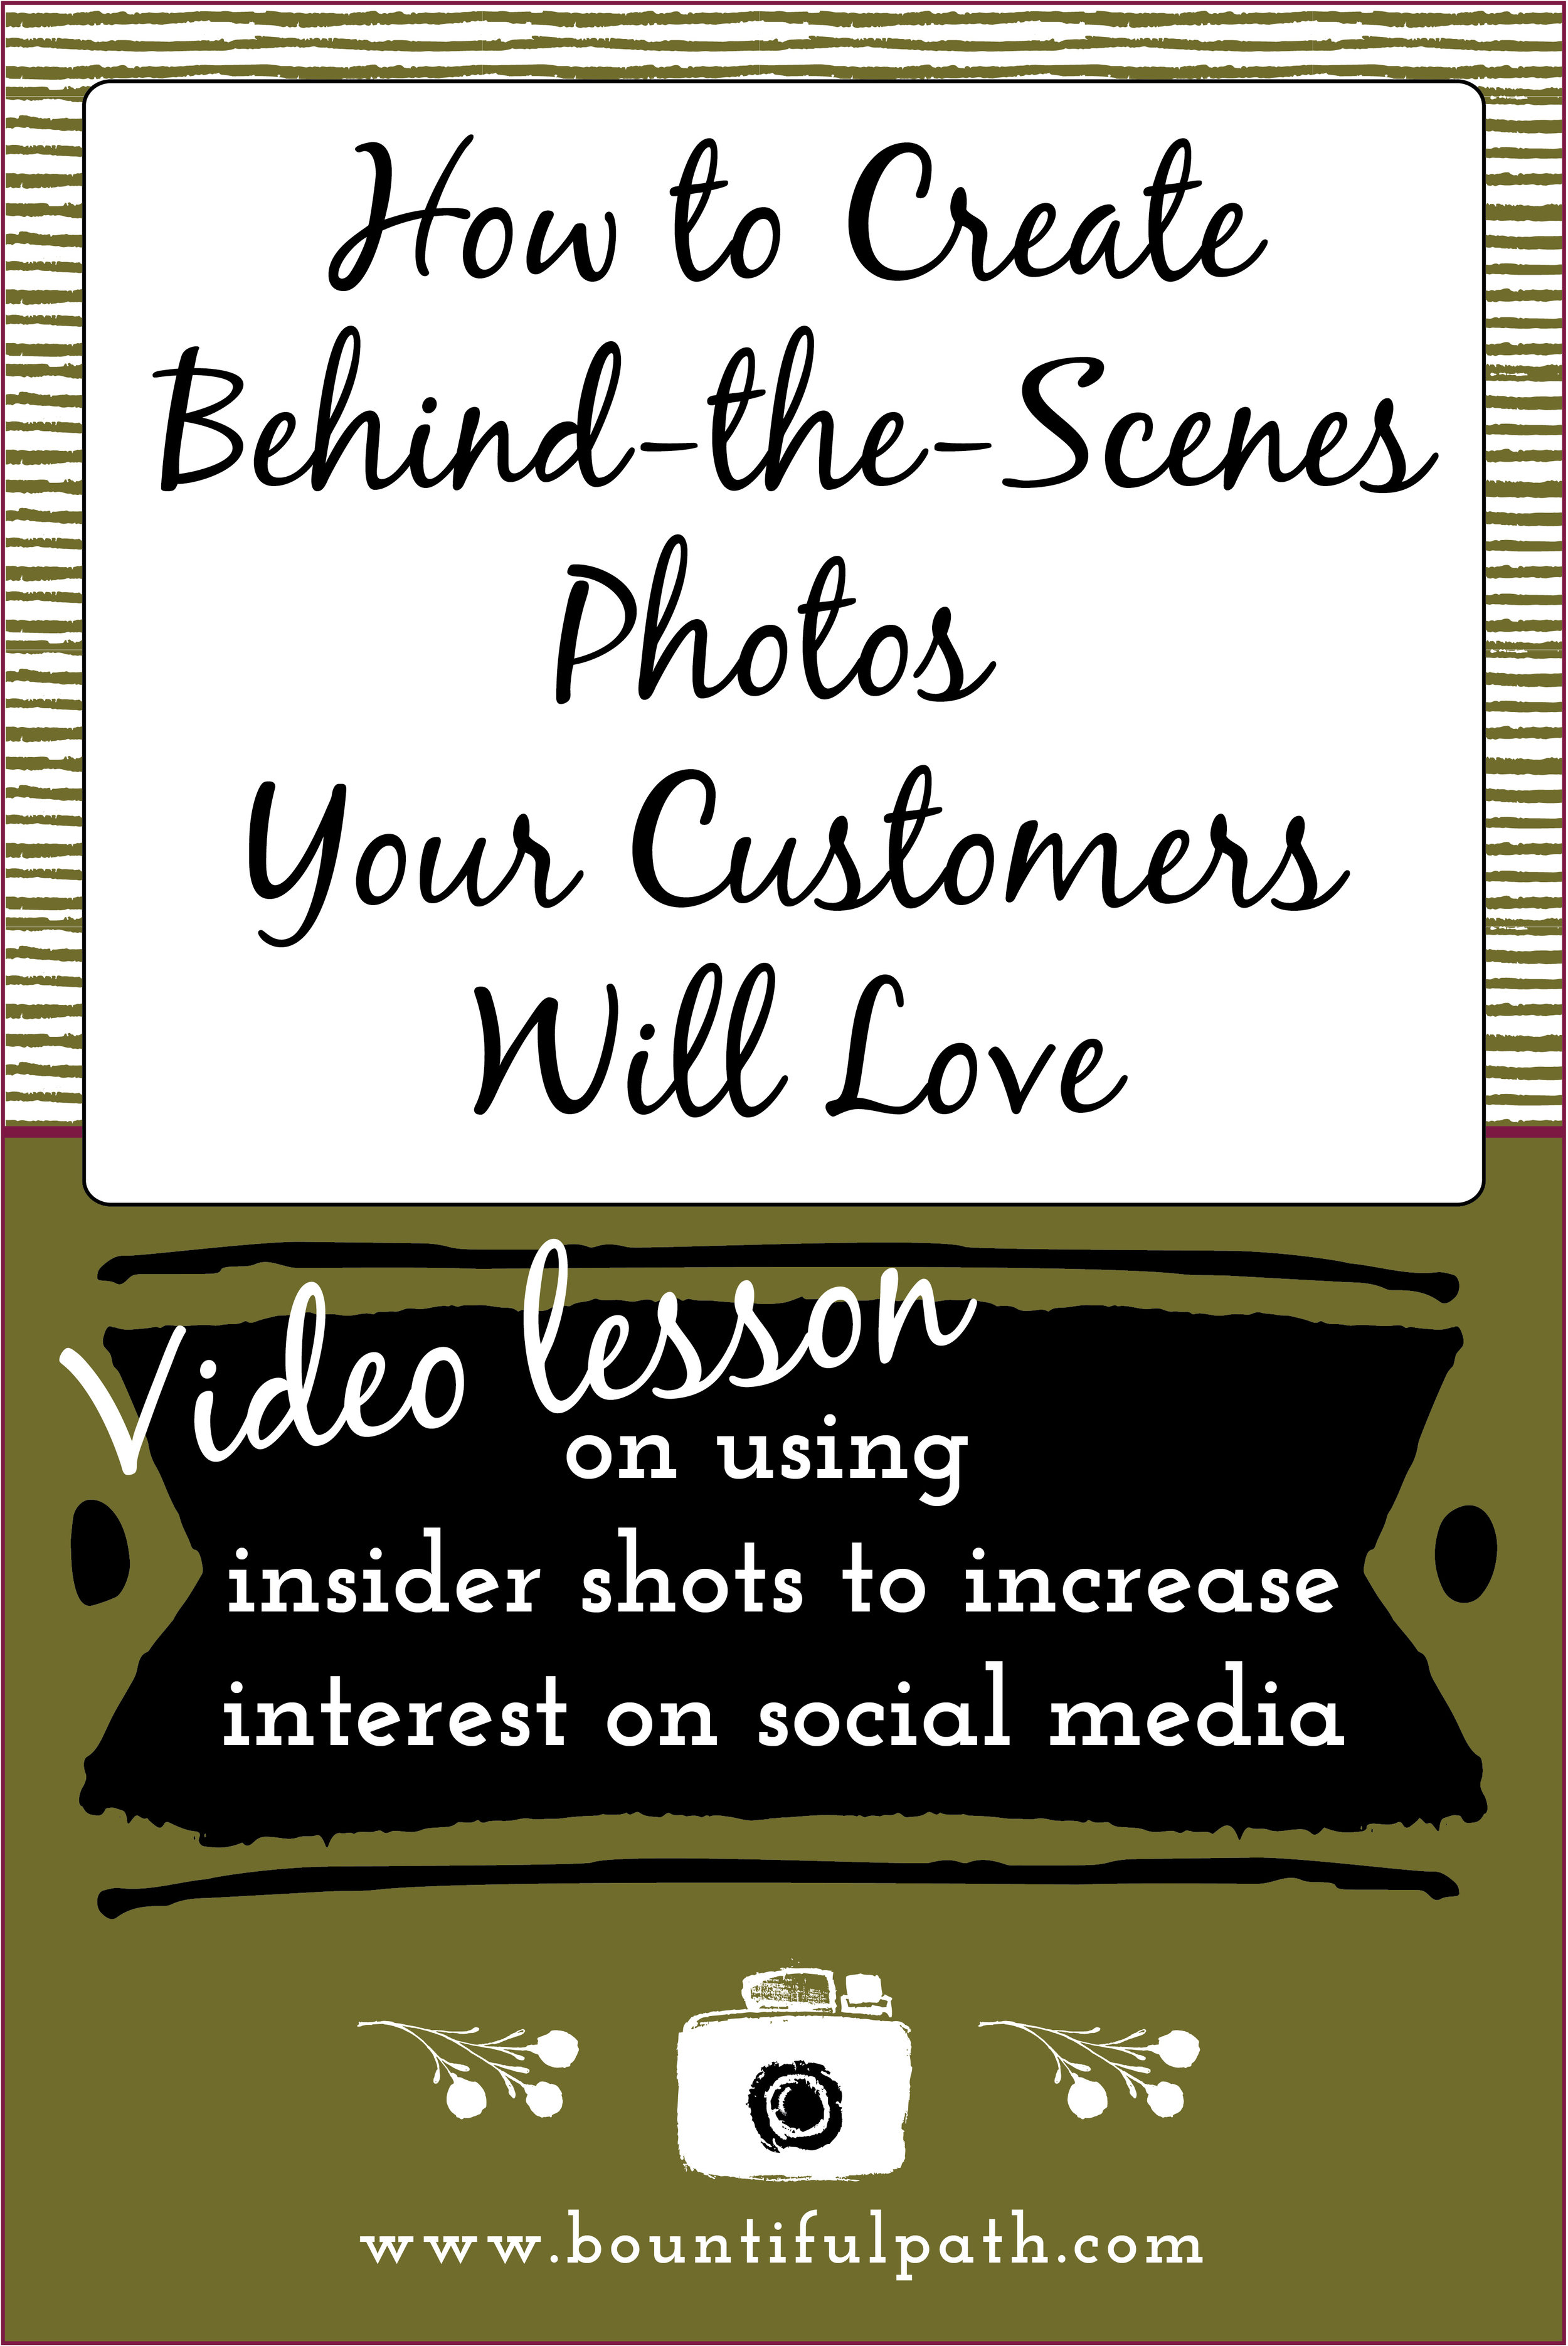 Learn how to engage your ideal customers on social media through behind the scenes photos of your business | Bountiful Path helping makers and creatives to visually connect with their ideal customers through photo & video